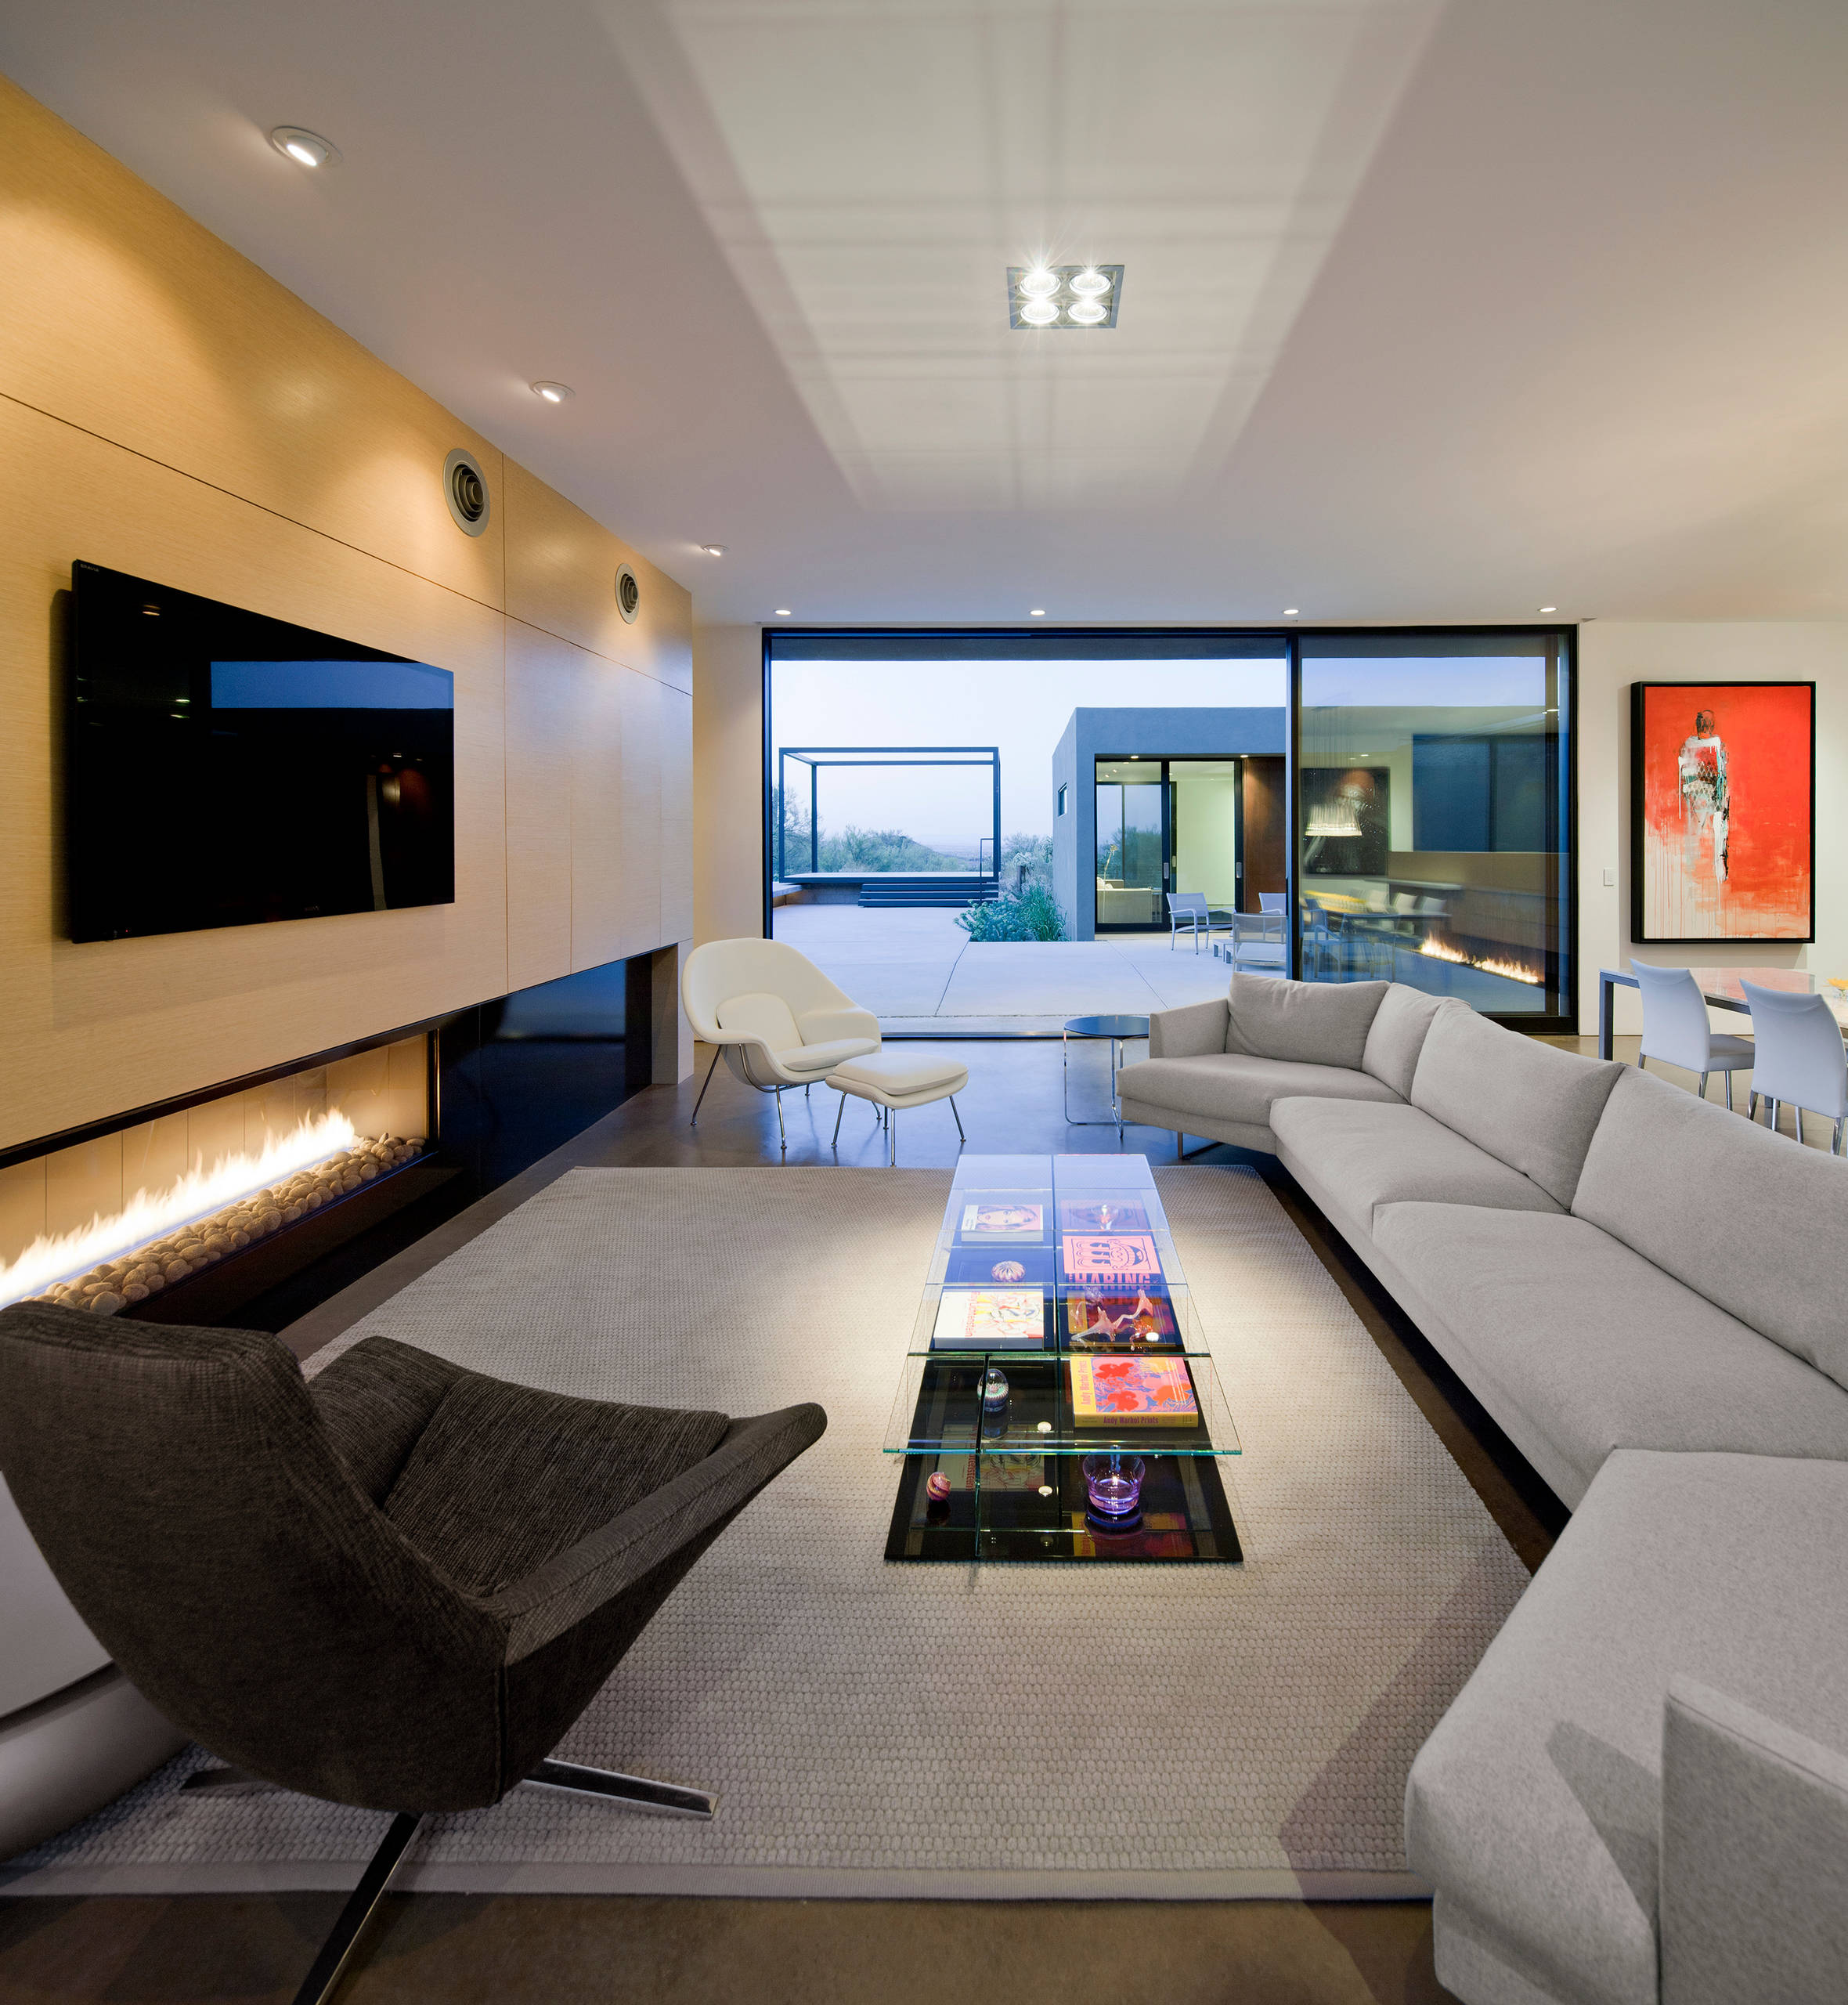 75 Beautiful Modern Living Room Pictures Ideas February 2021 Houzz